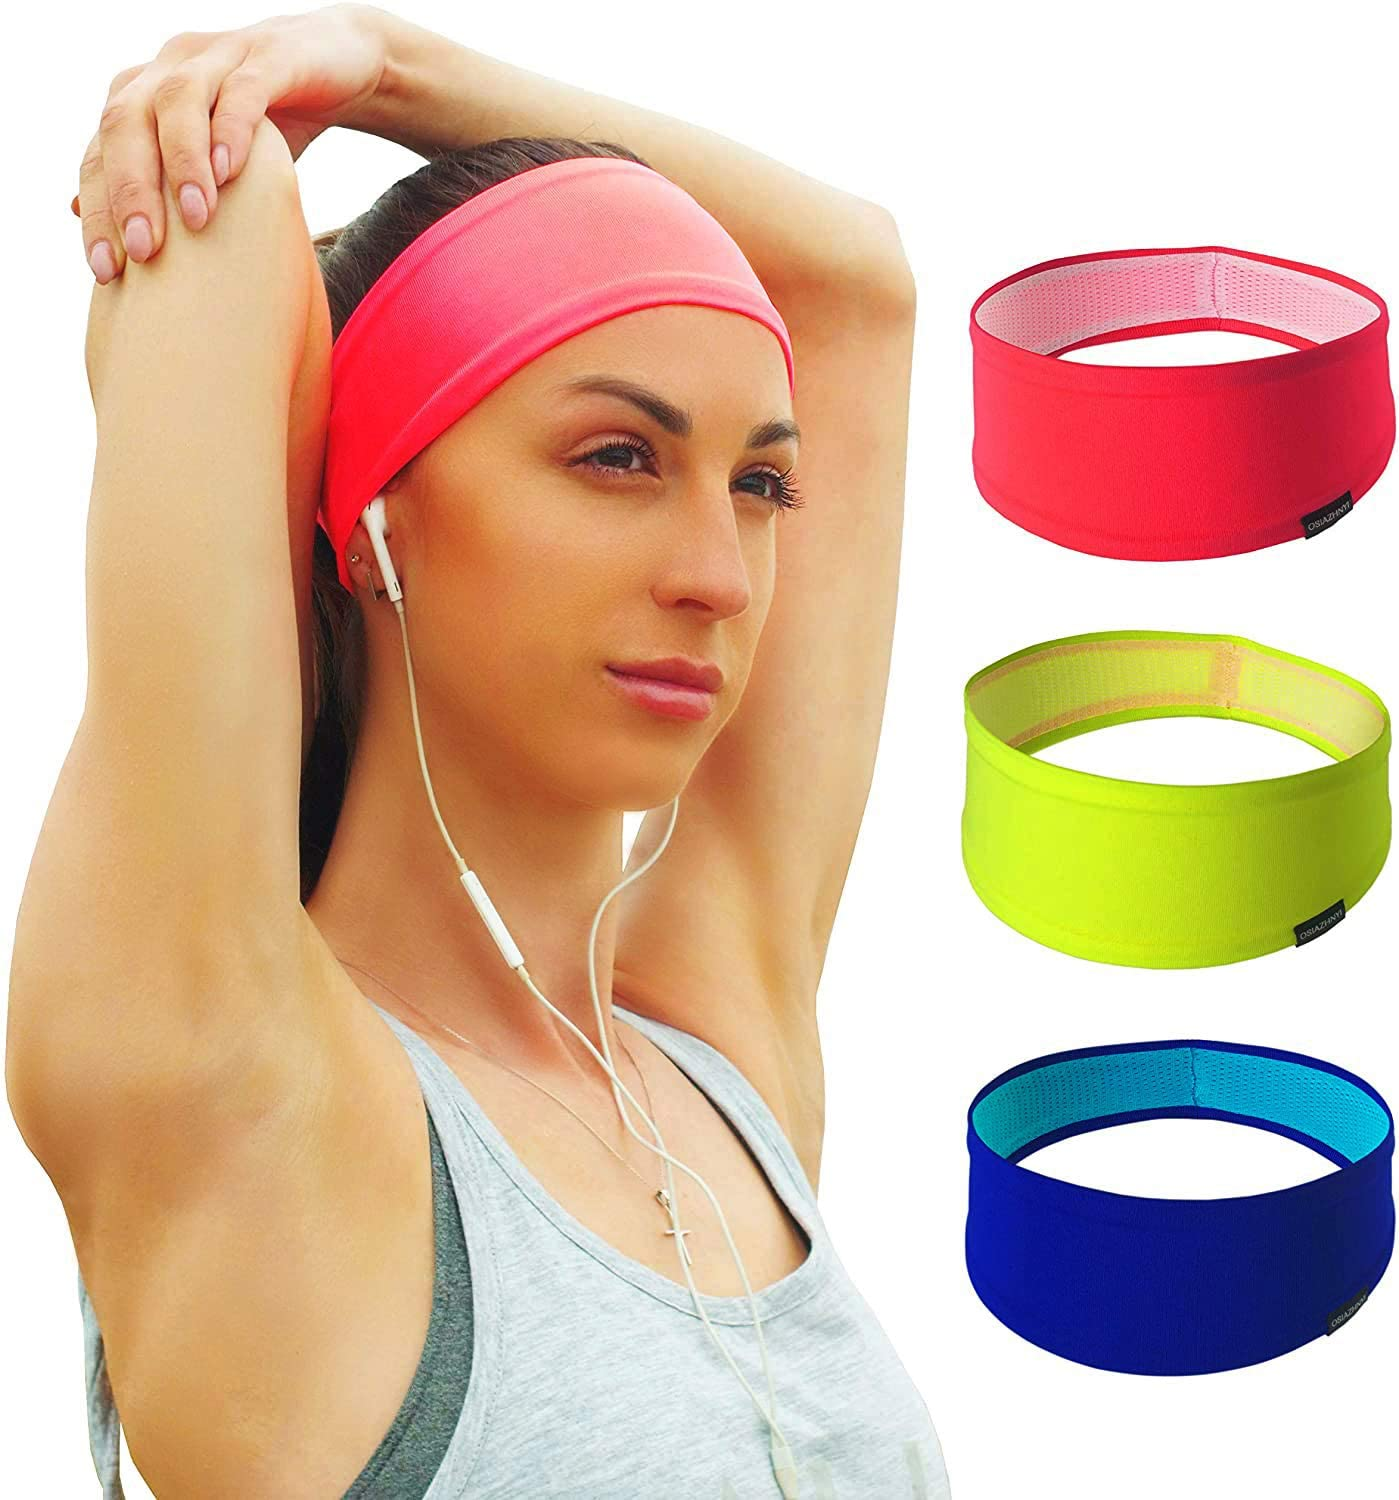 OSIAZHNYI Set of 3 Workout Headbands for Women Running Fitness Yoga Travel Gym Cycling Tennis - Sports Elastic Wicking Sweat Bands Bright Colors Non-Slip